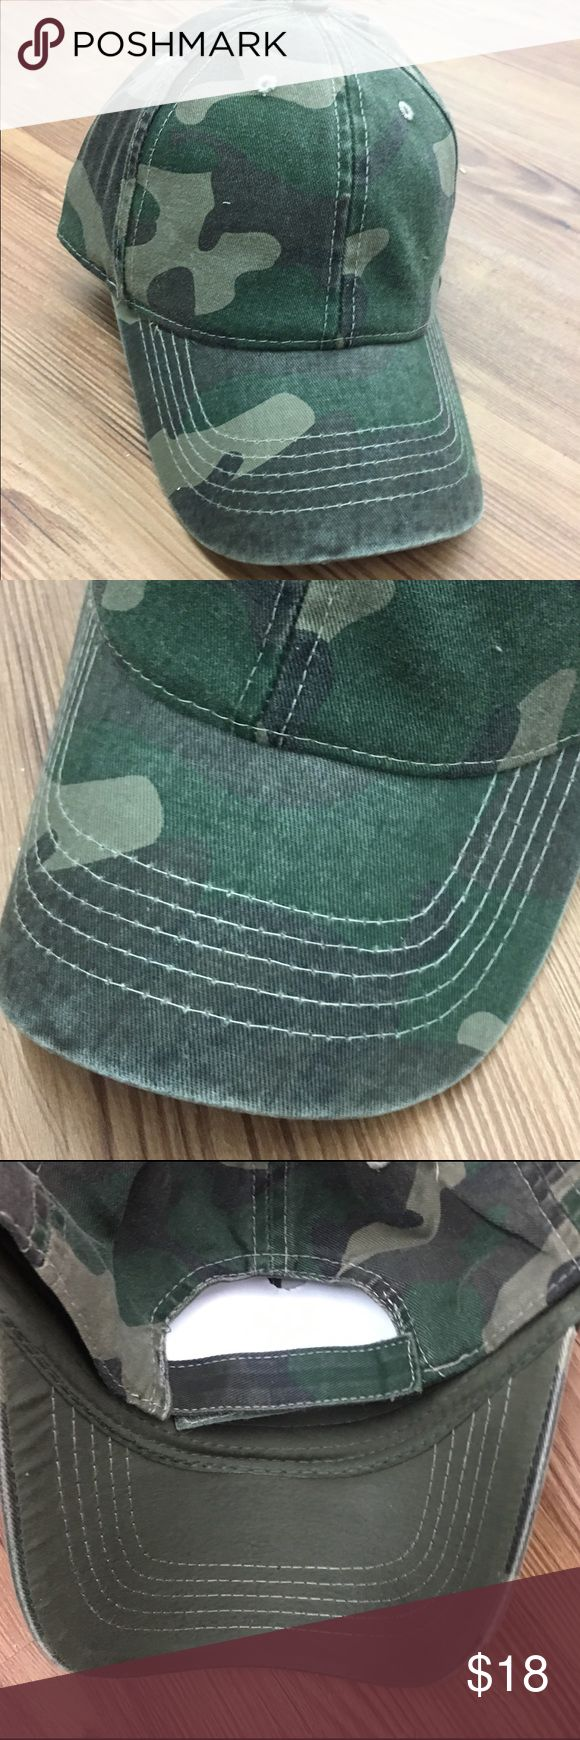 Women's Camo Baseball Adjustable Cap Hat New Women's Camo Baseball Adjustable Cap Hat . Velcro adjustable custom size fit. Bundle and get 20% off. Accessories Hats